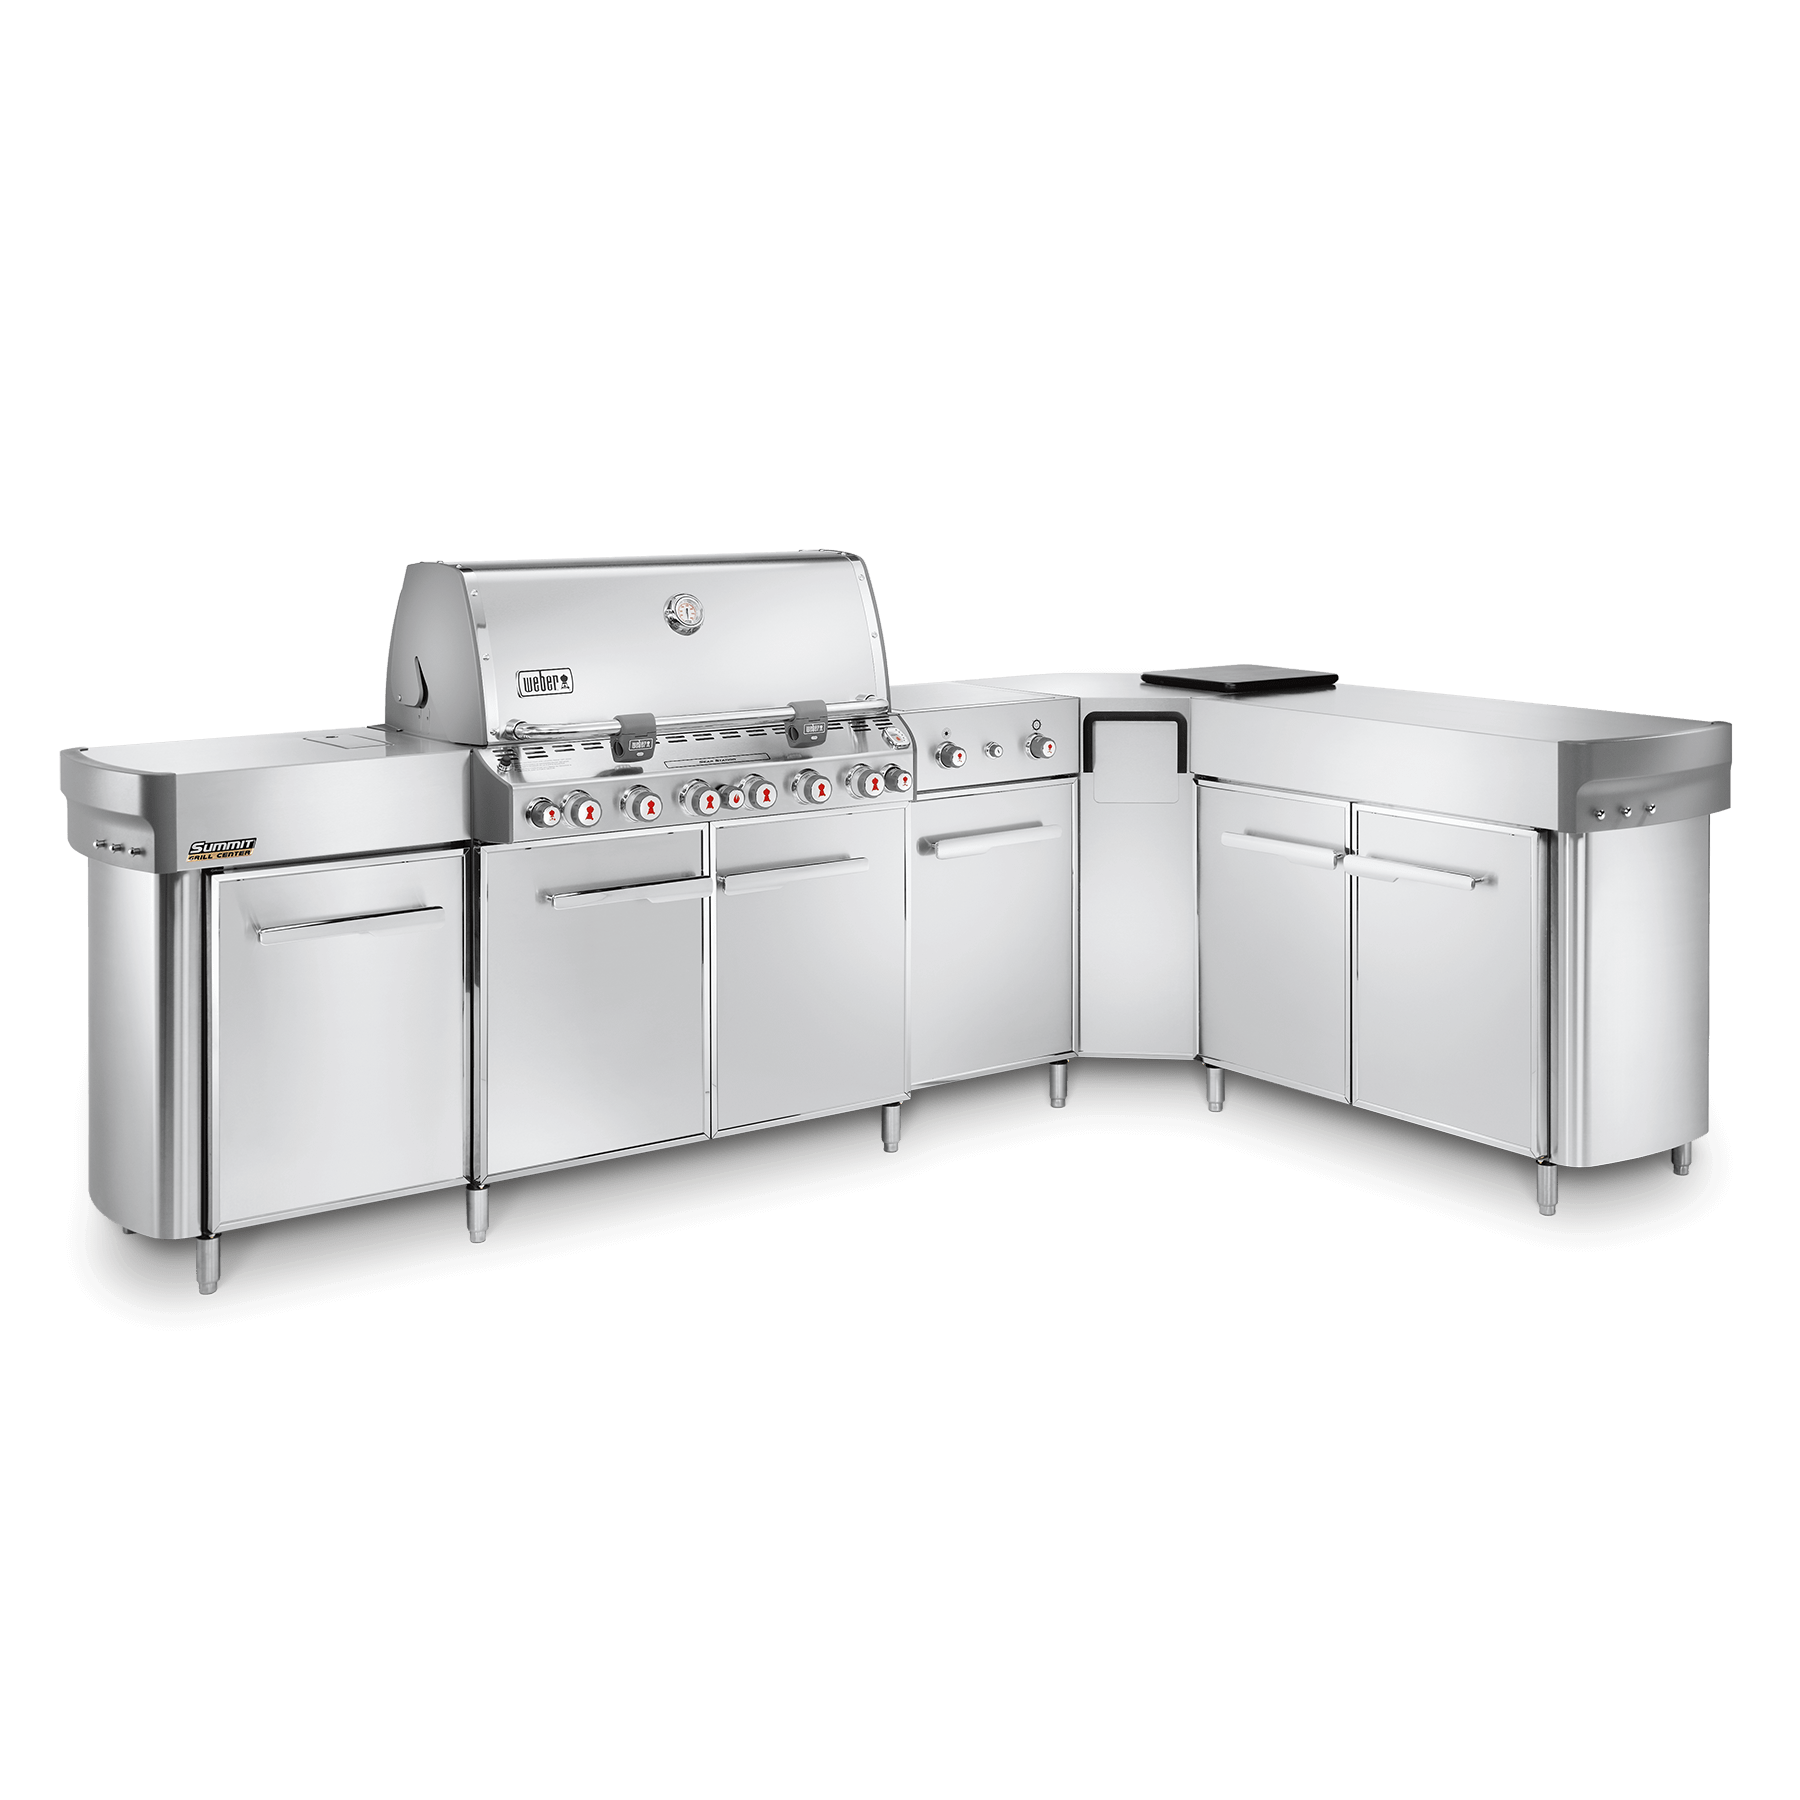 Summit® GBS Grill-Center